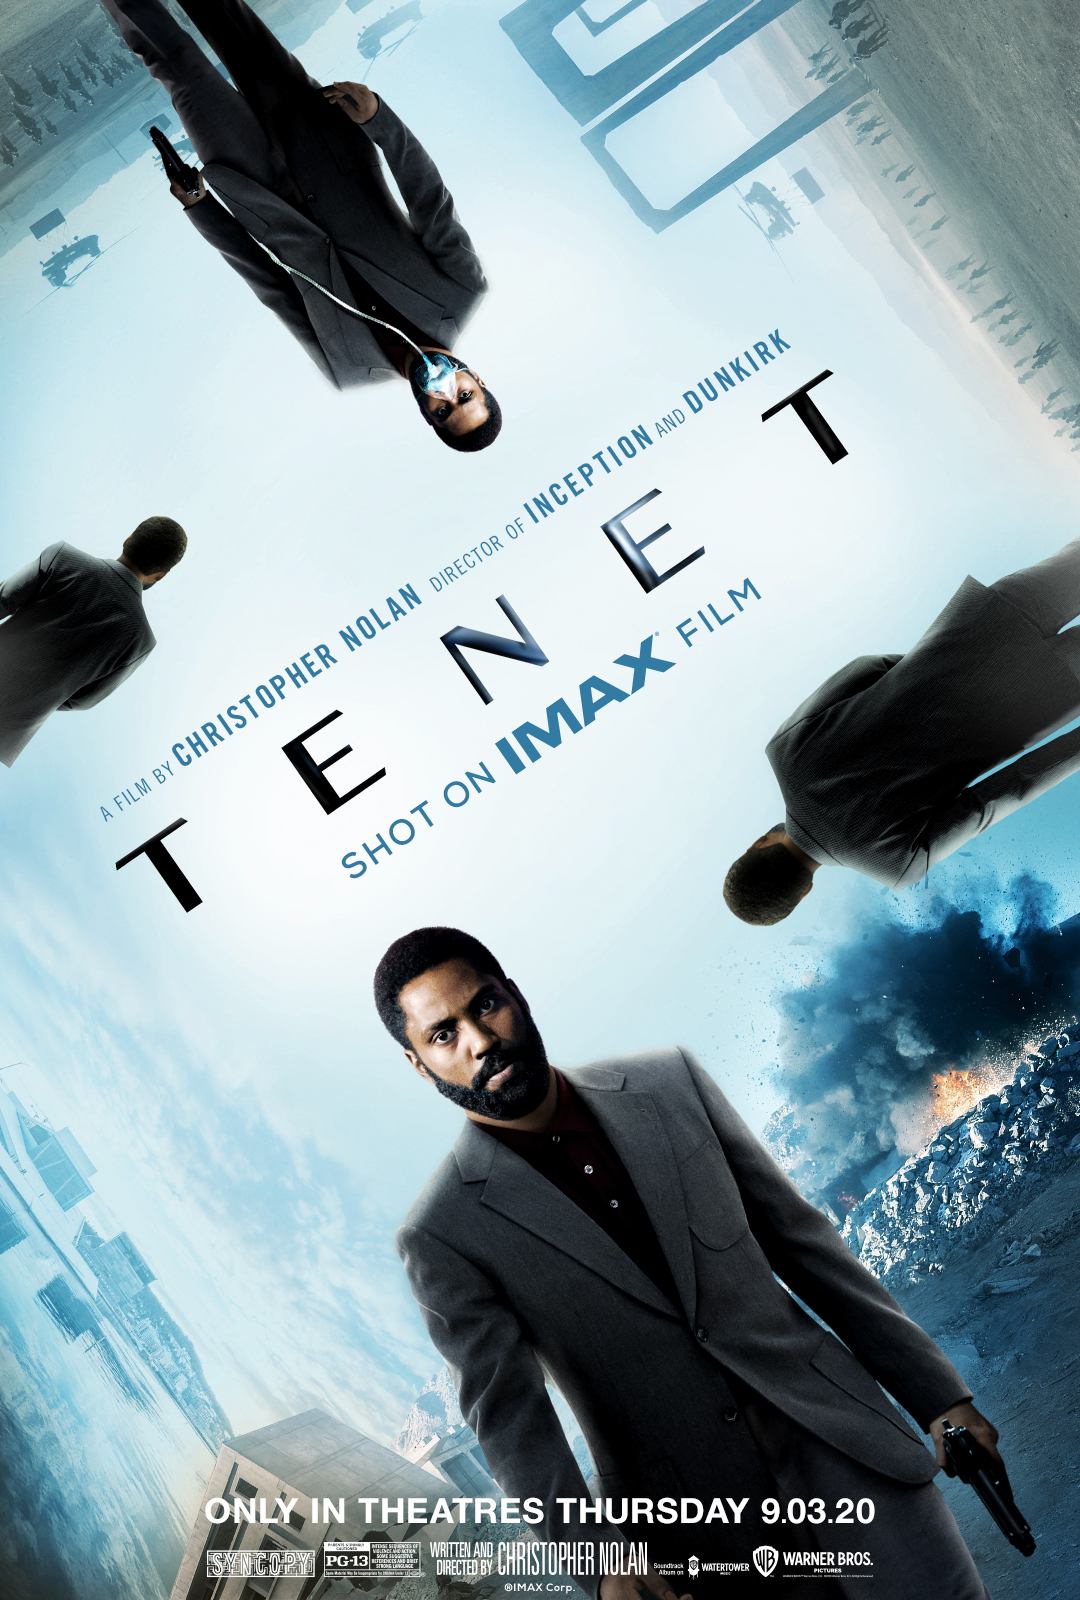 Movie poster image for TENET in IMAX